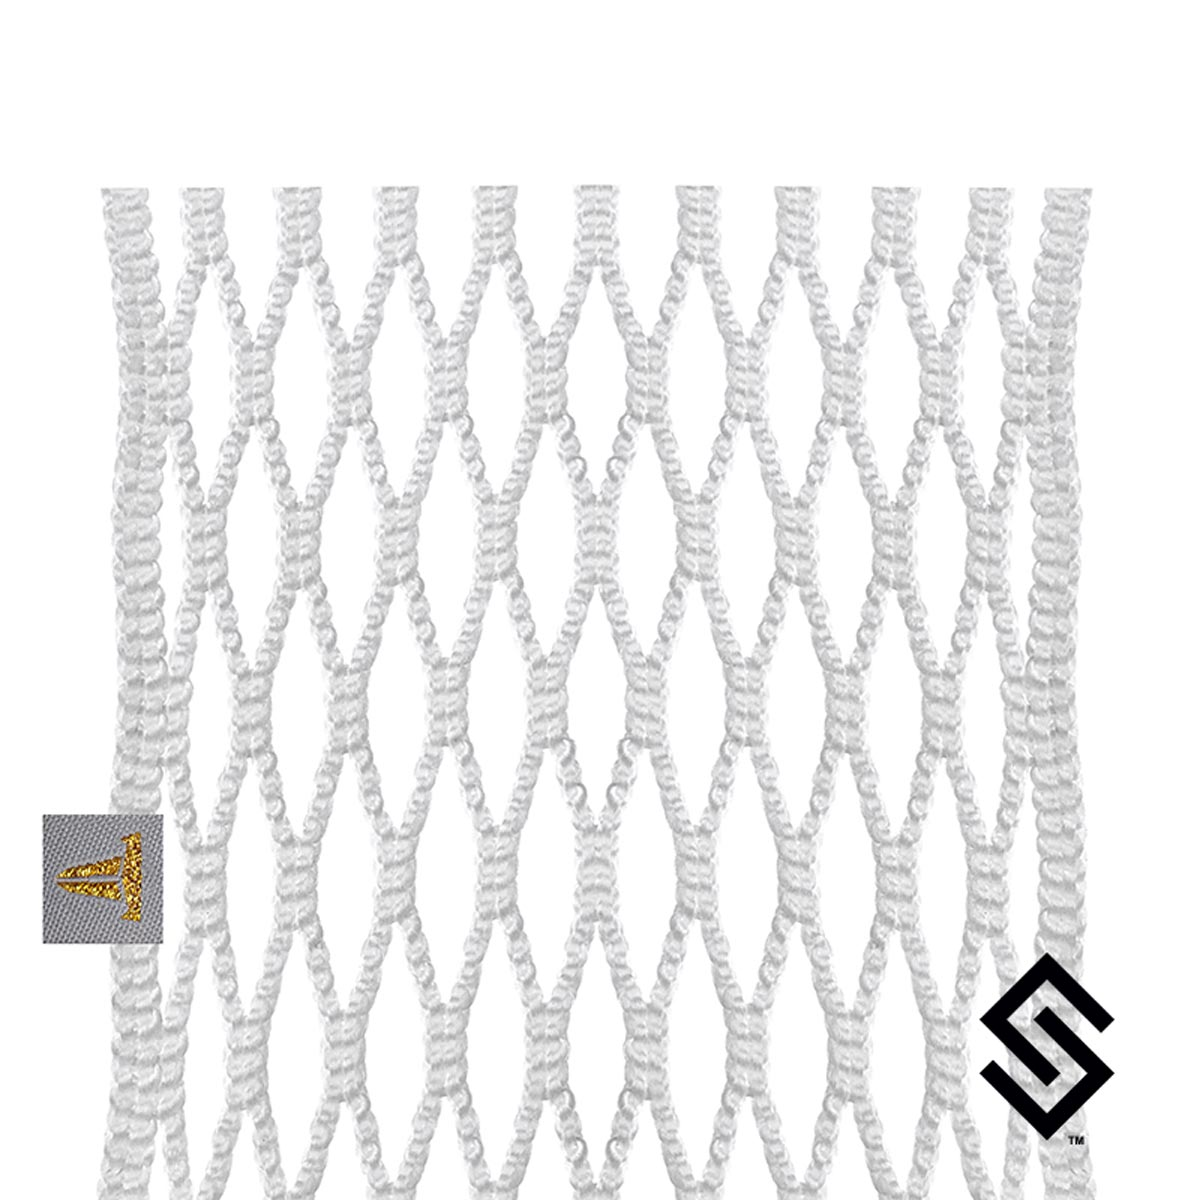 Throne Lacrosse Fiber 2 Mesh Diamond